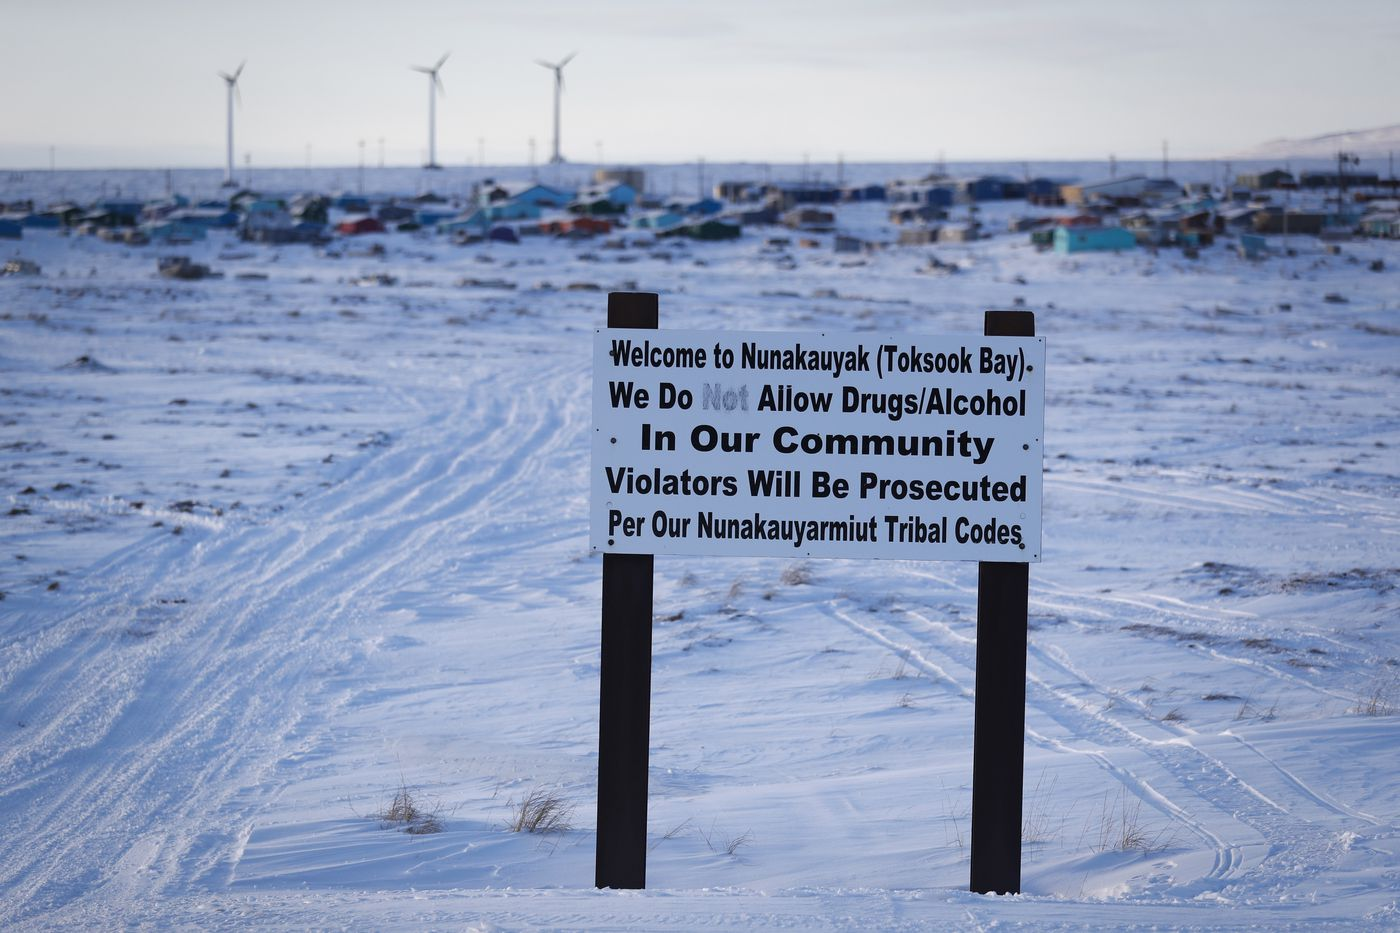 A sign displays rules Saturday, Jan. 18, 2020, in Toksook Bay, Alaska. The first Americans to be counted in the 2020 Census starting Tuesday, Jan. 21, live in this Bering Sea coastal village. The Census traditionally begins earlier in Alaska than the rest of the nation because frozen ground allows easier access for Census workers, and rural Alaska will scatter with the spring thaw to traditional hunting and fishing grounds. (AP Photo/Gregory Bull)